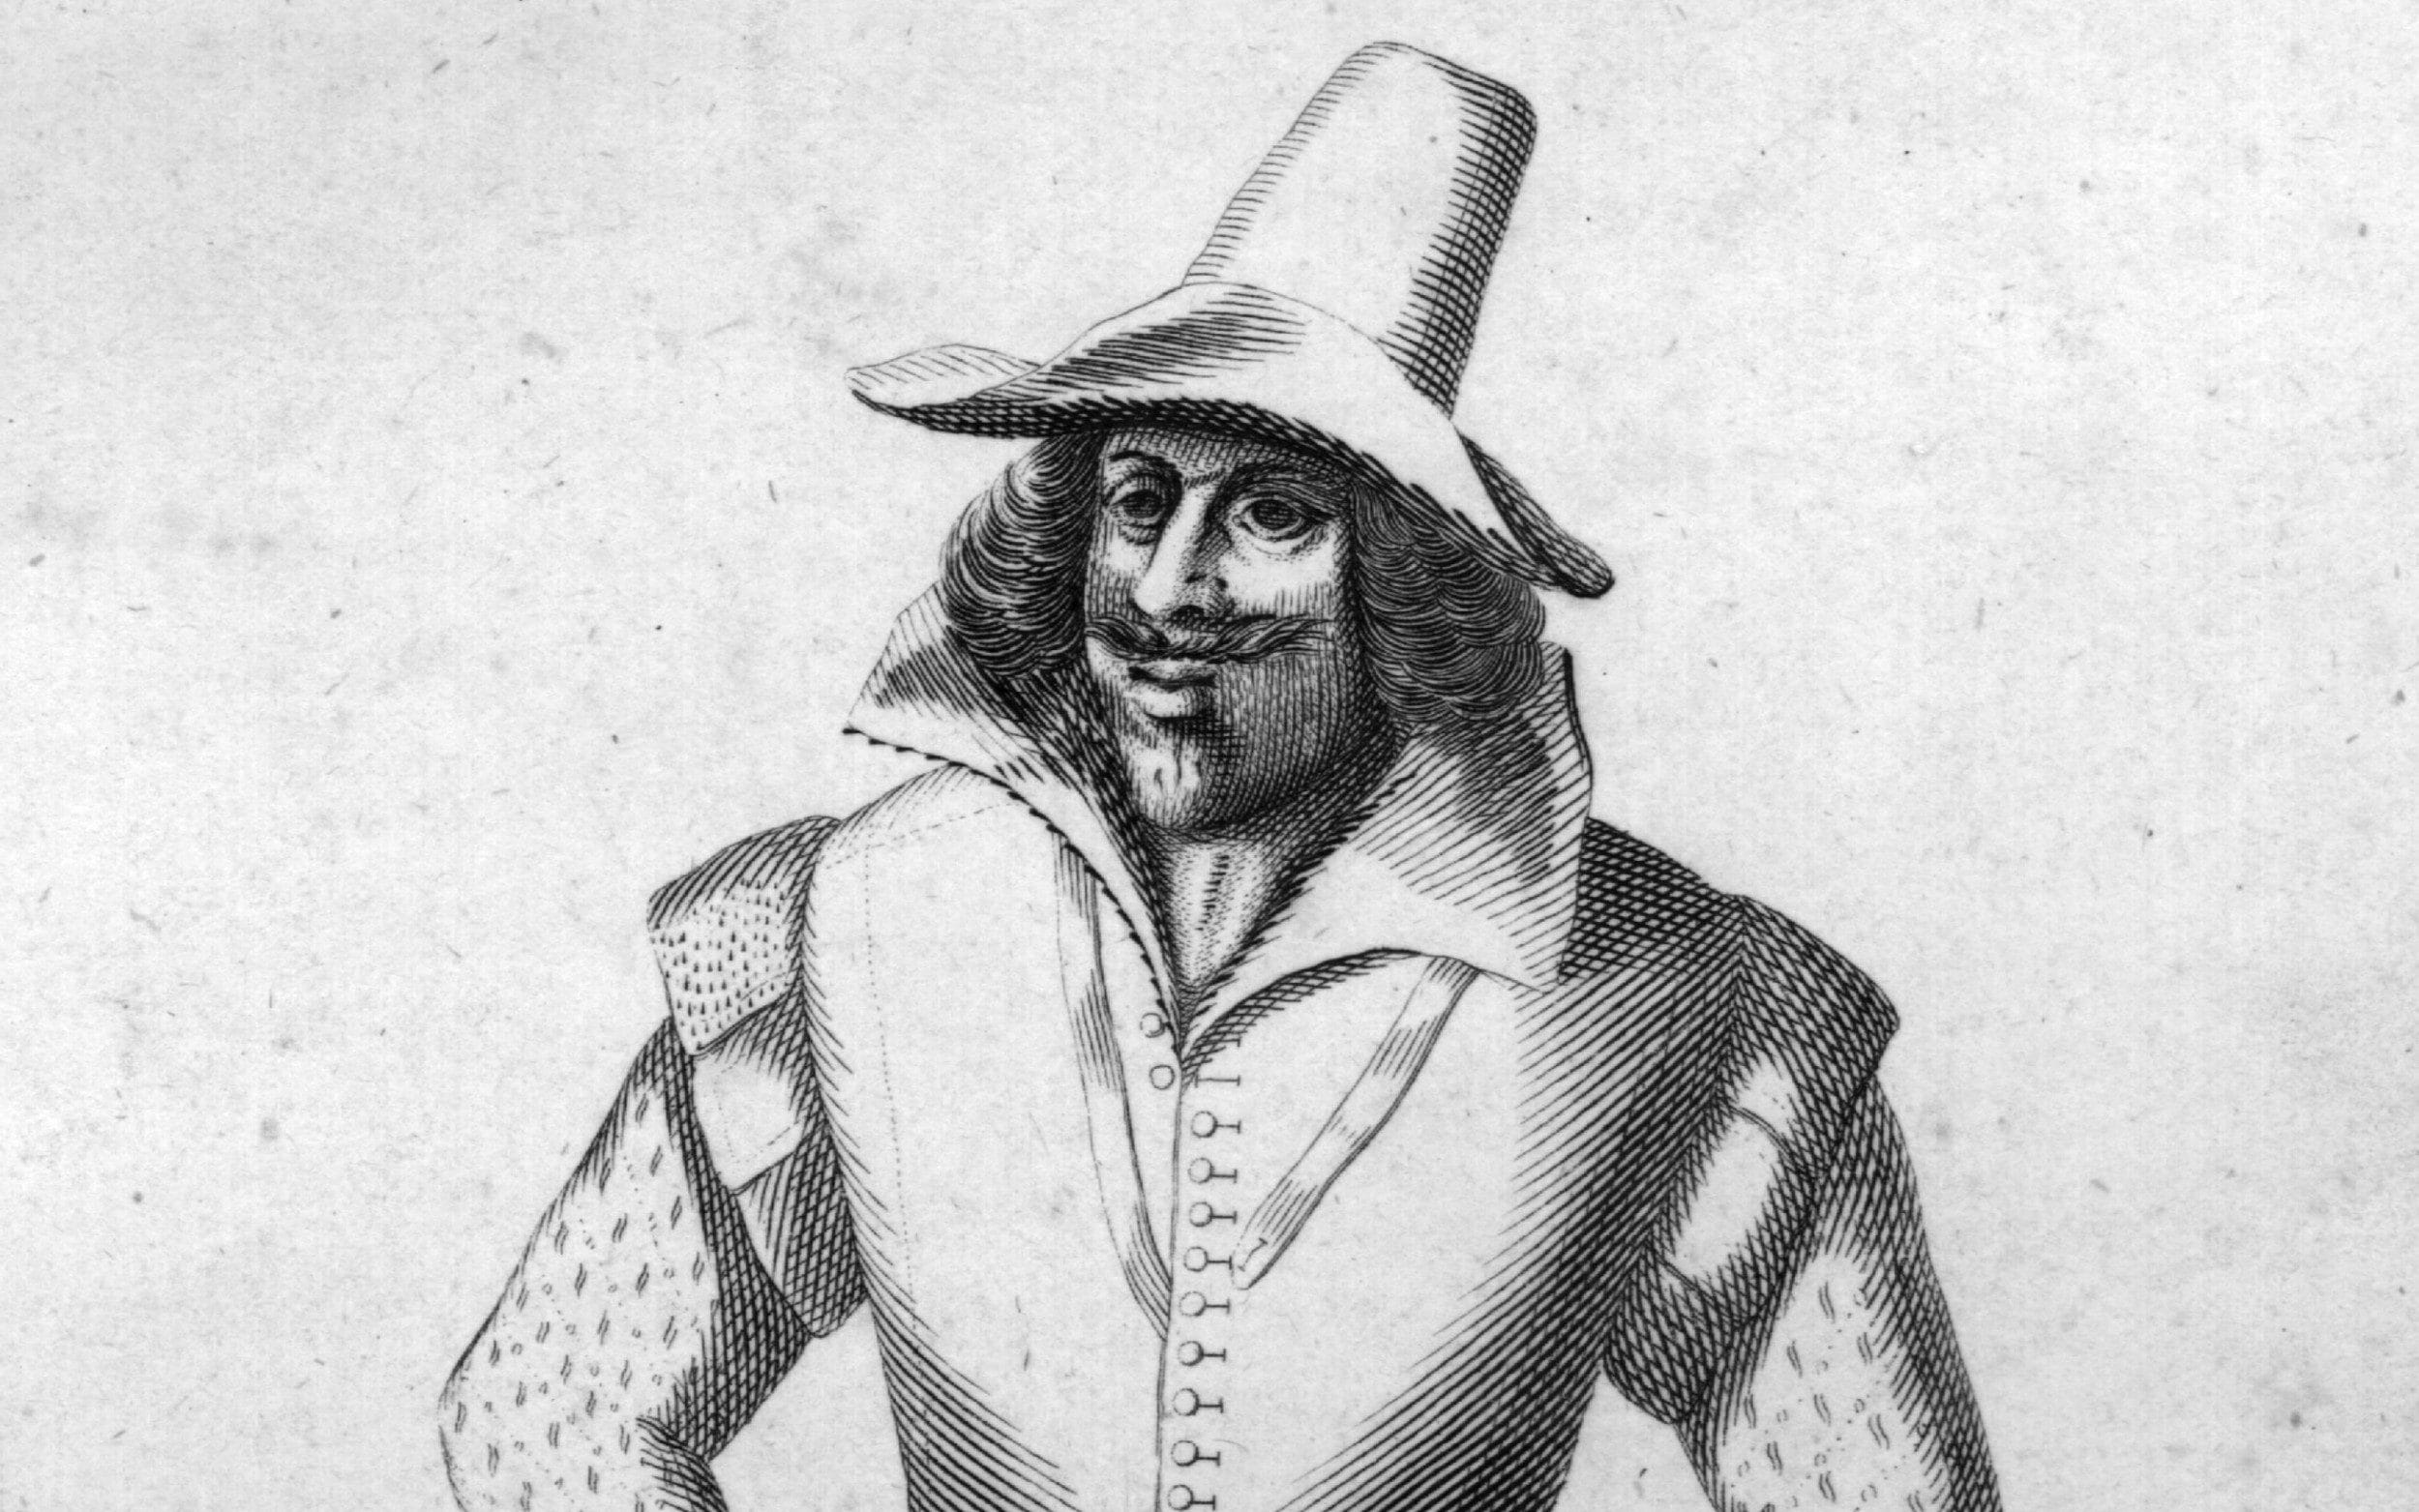 https://www.telegraph.co.uk/news/2020/11/02/guy-fawkes-facts-things-never-knew/